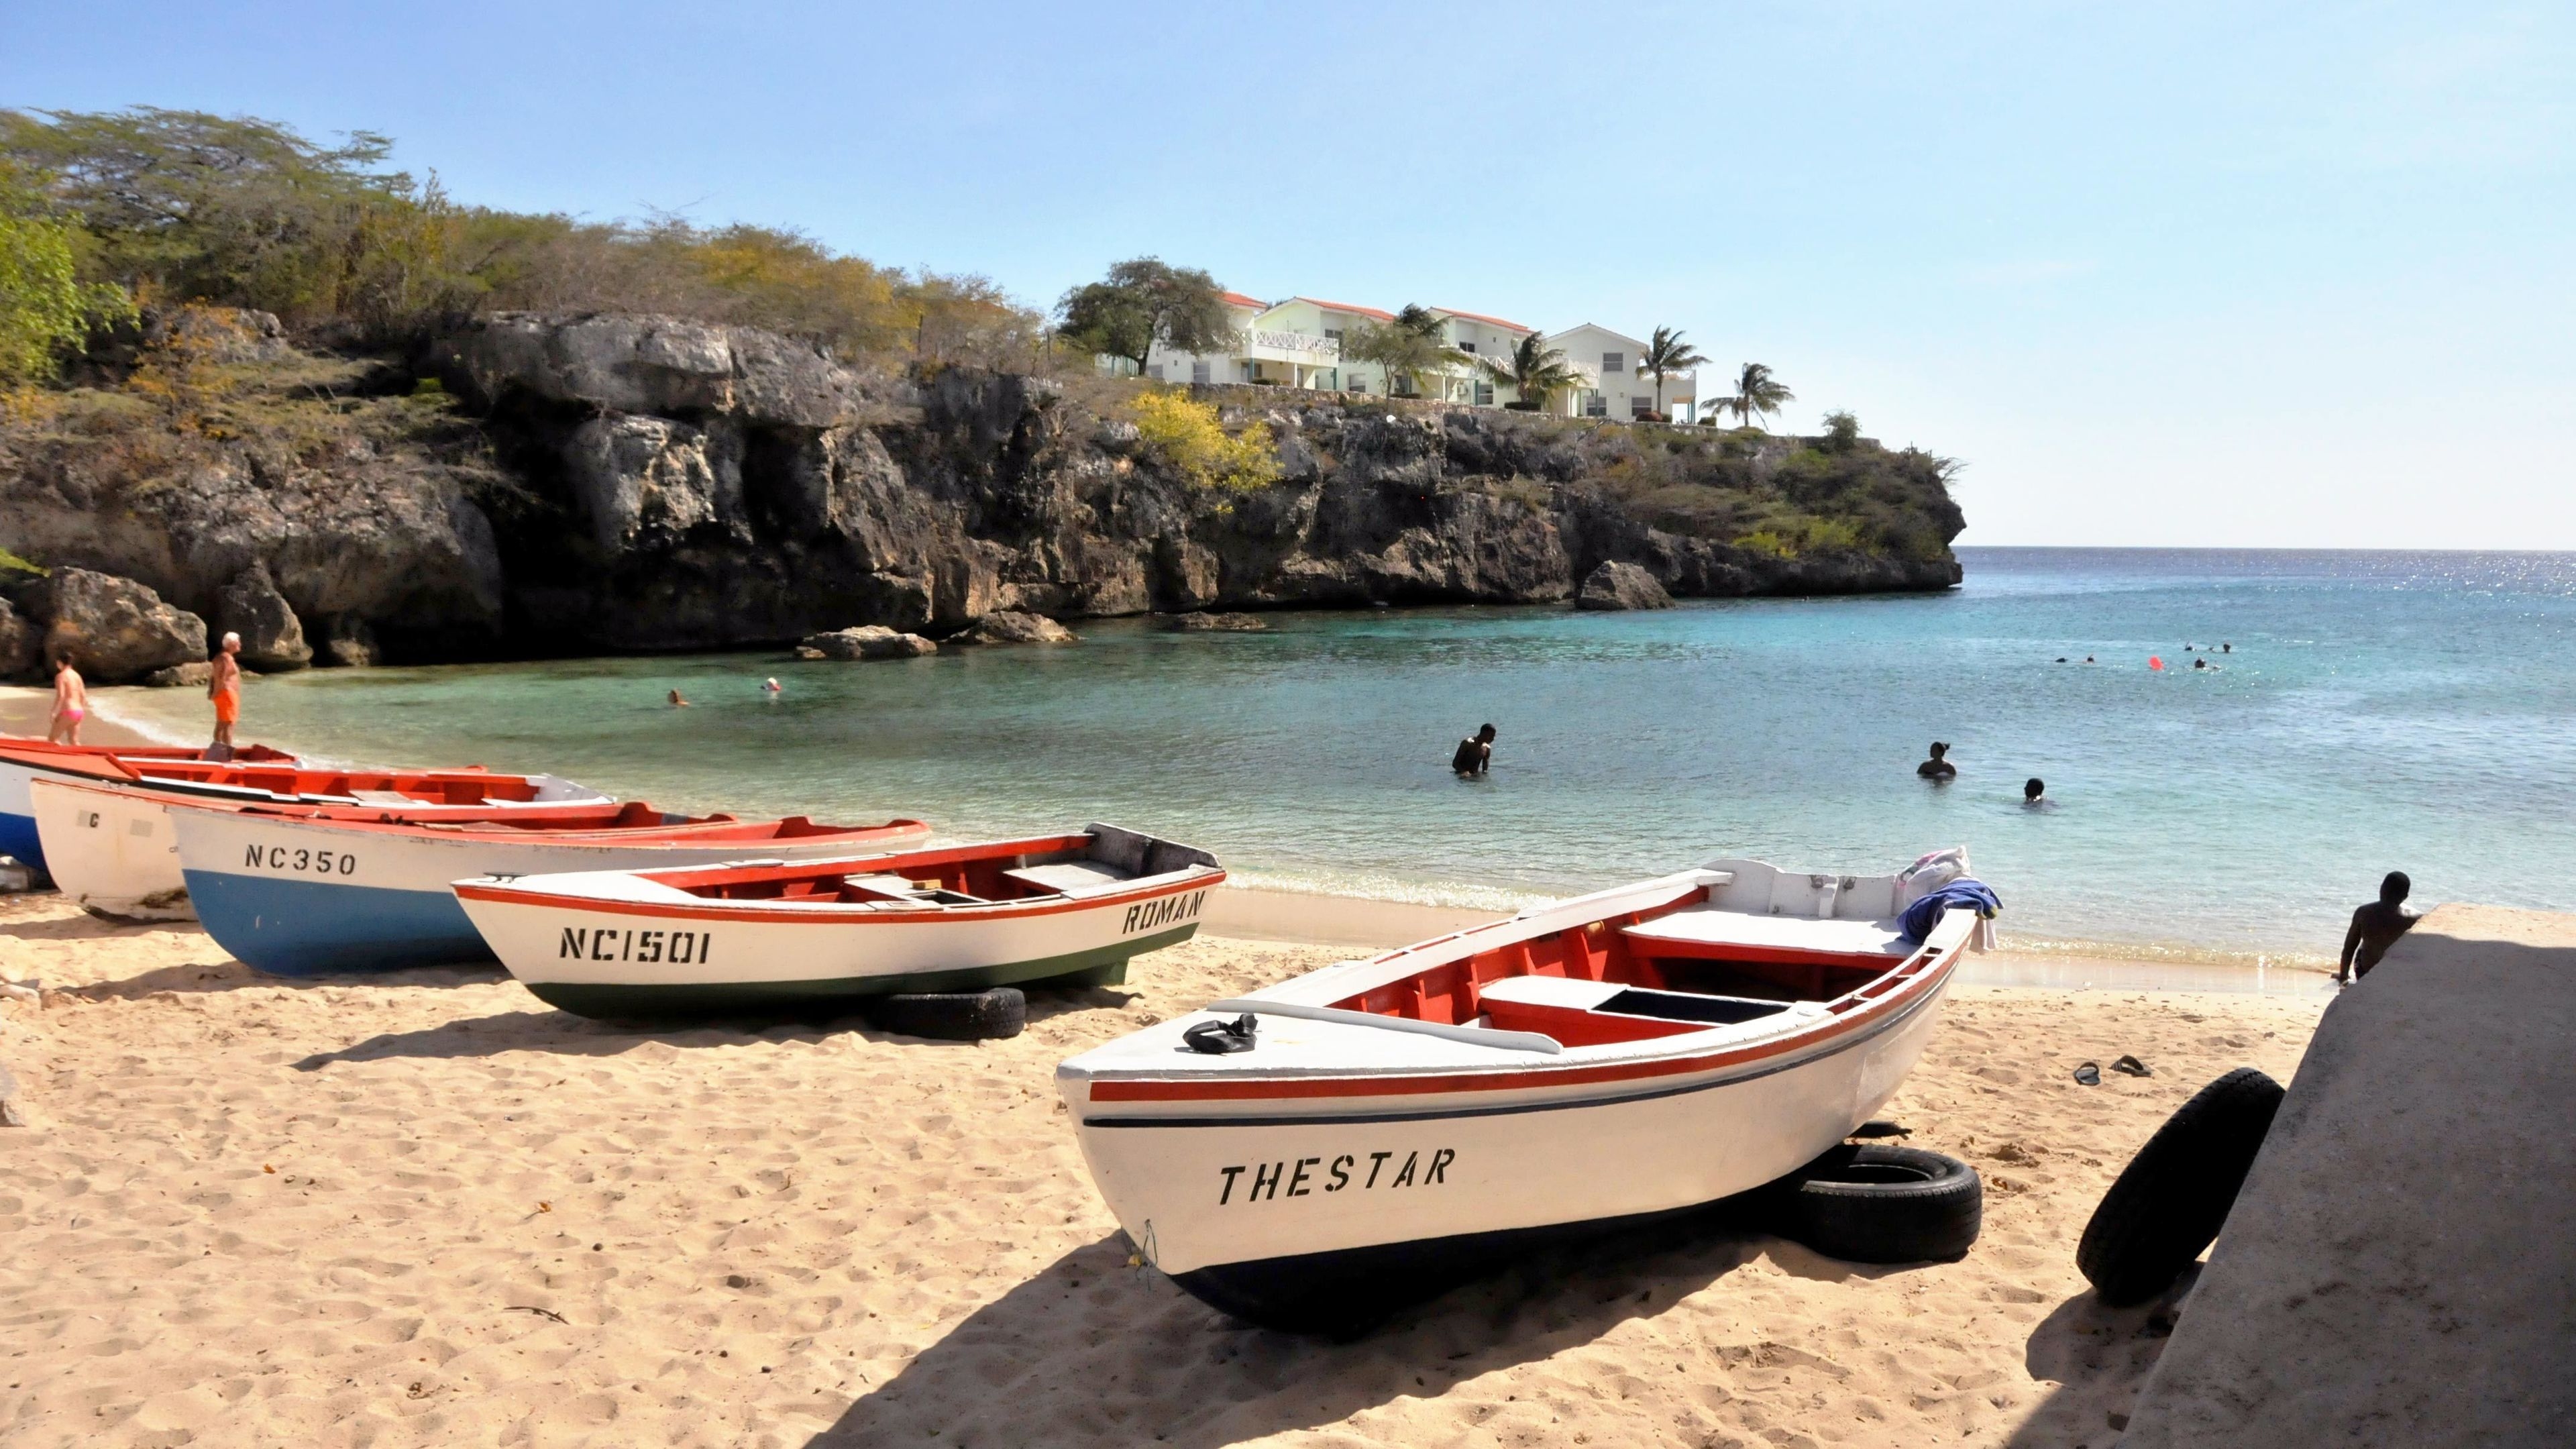 Jeep Tour to Shete Boca National Park with Snorkeling